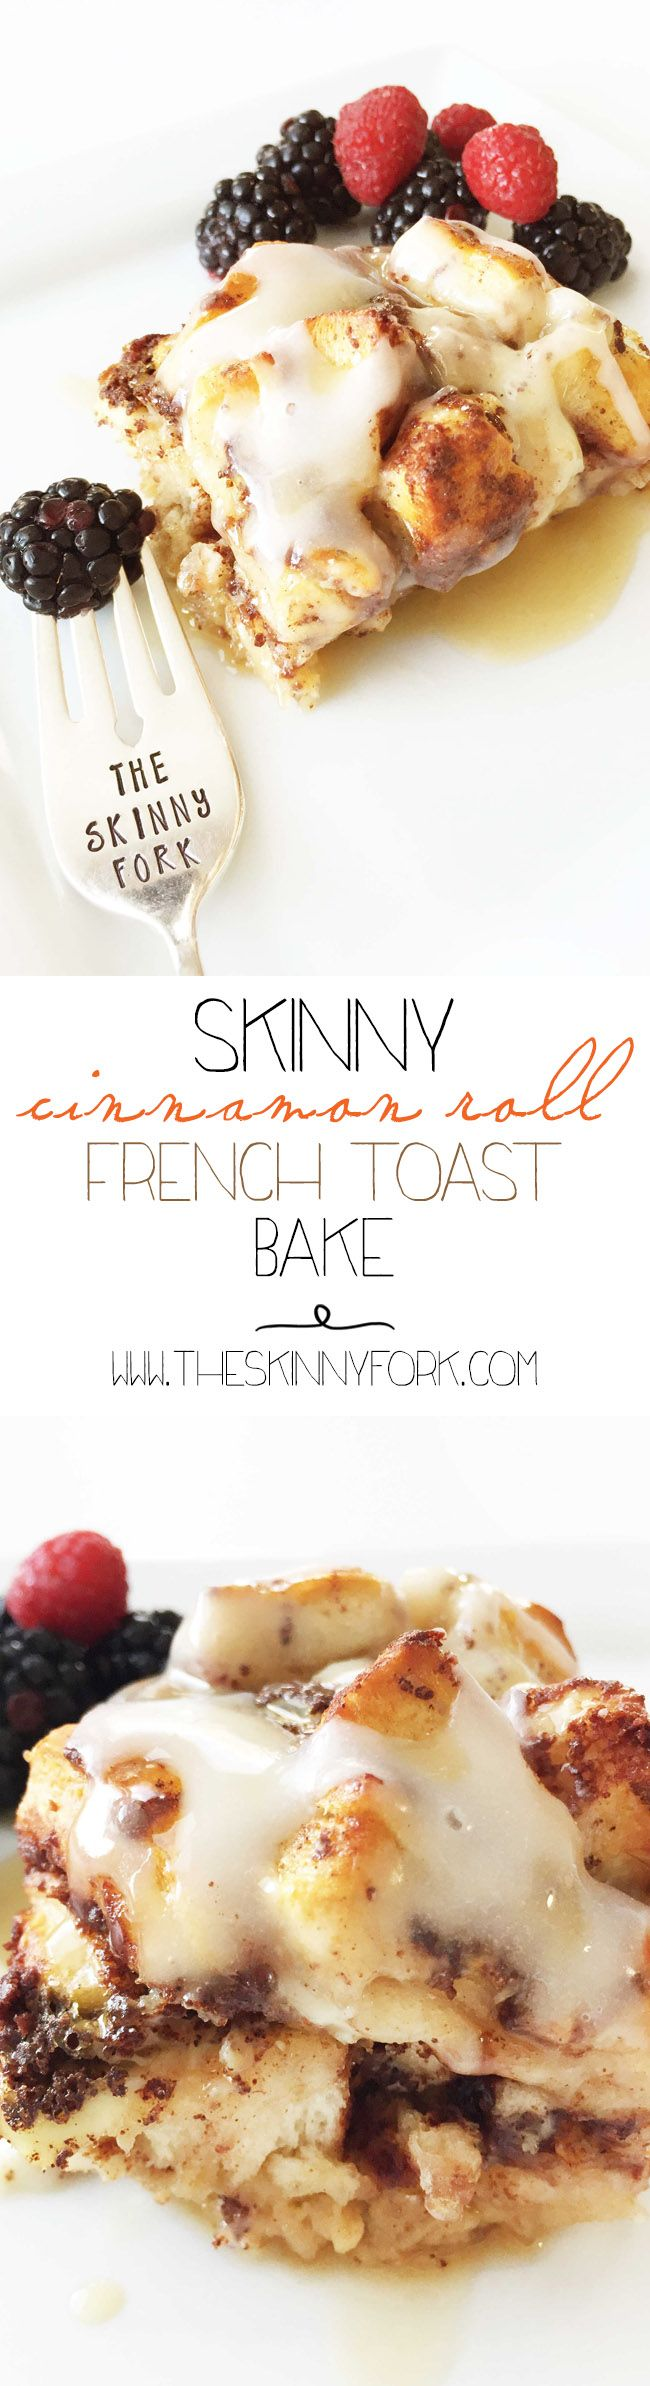 Skinny Cinnamon Roll French Toast Bake - Two of the best things in the world for breakfast, combined into one perfect morning treat. TheSkinnyFork.com